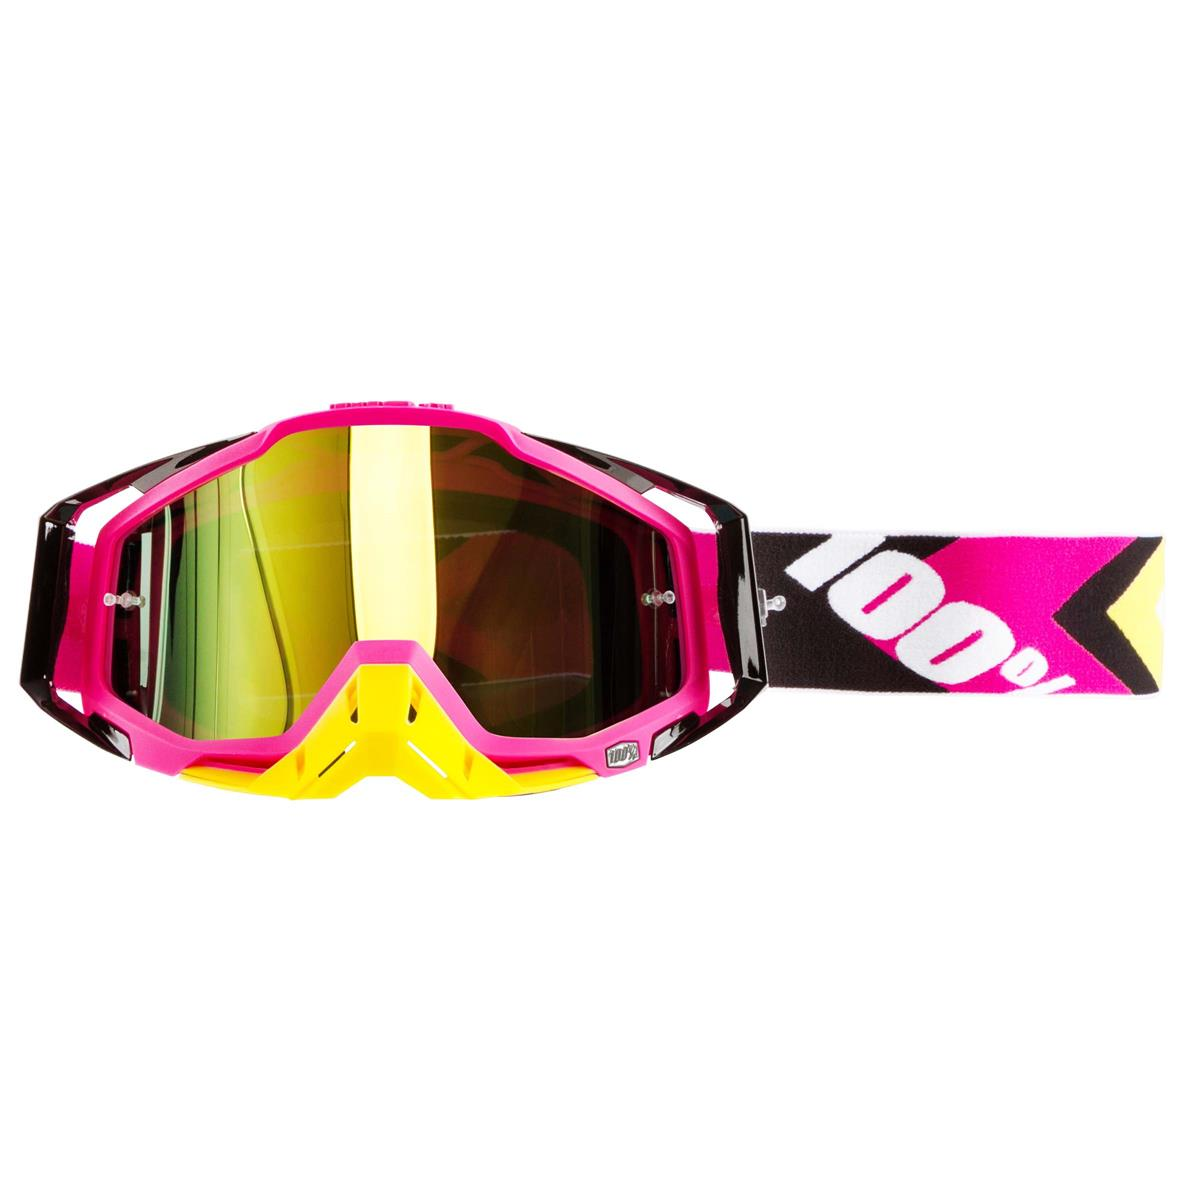 100% Crossbrille The Racecraft Hyperion Magenta - Gold verspiegelt